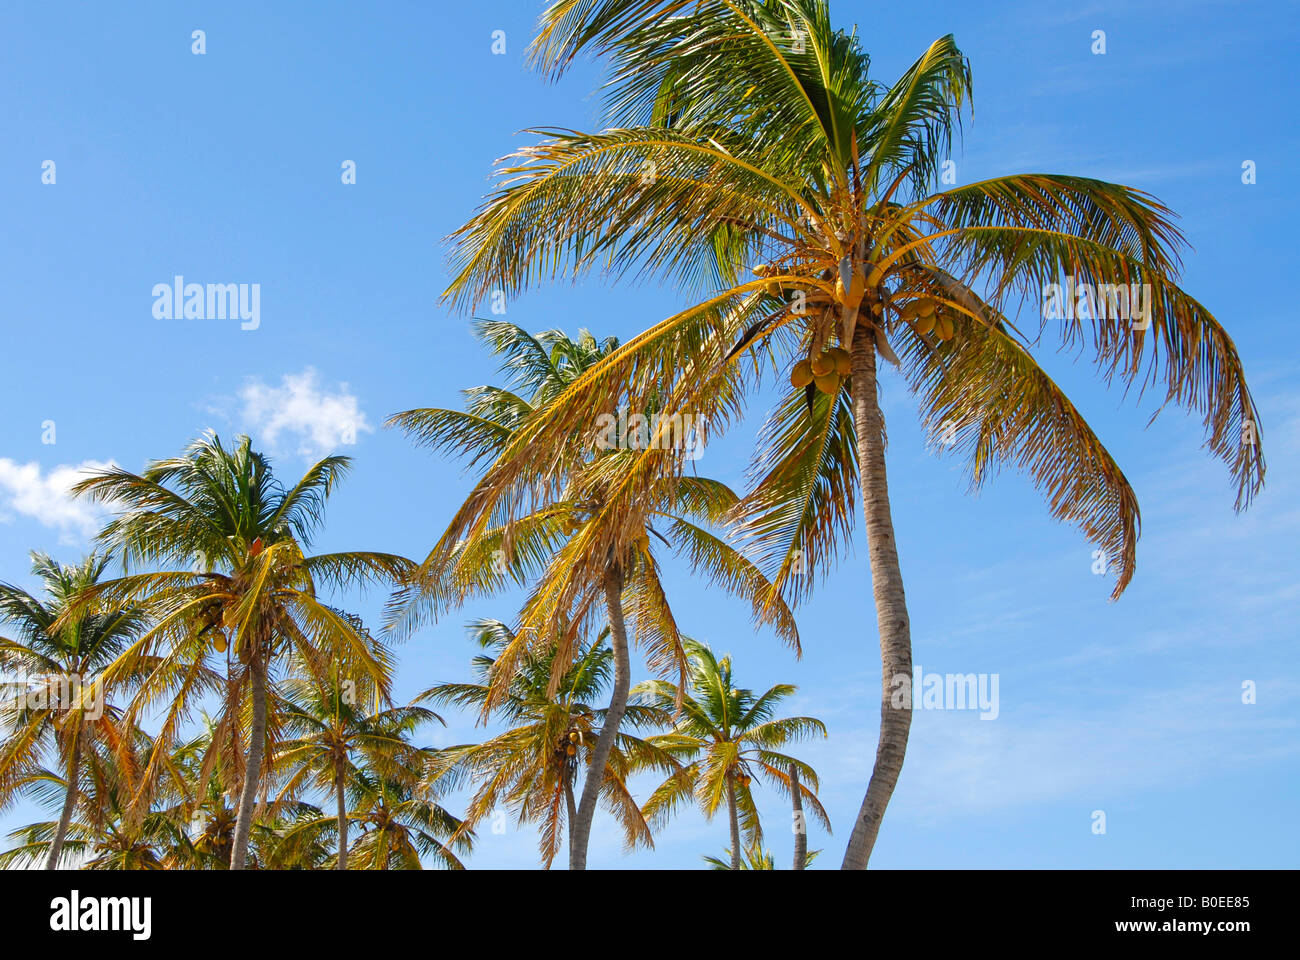 Palm trees and blue sky - Stock Image